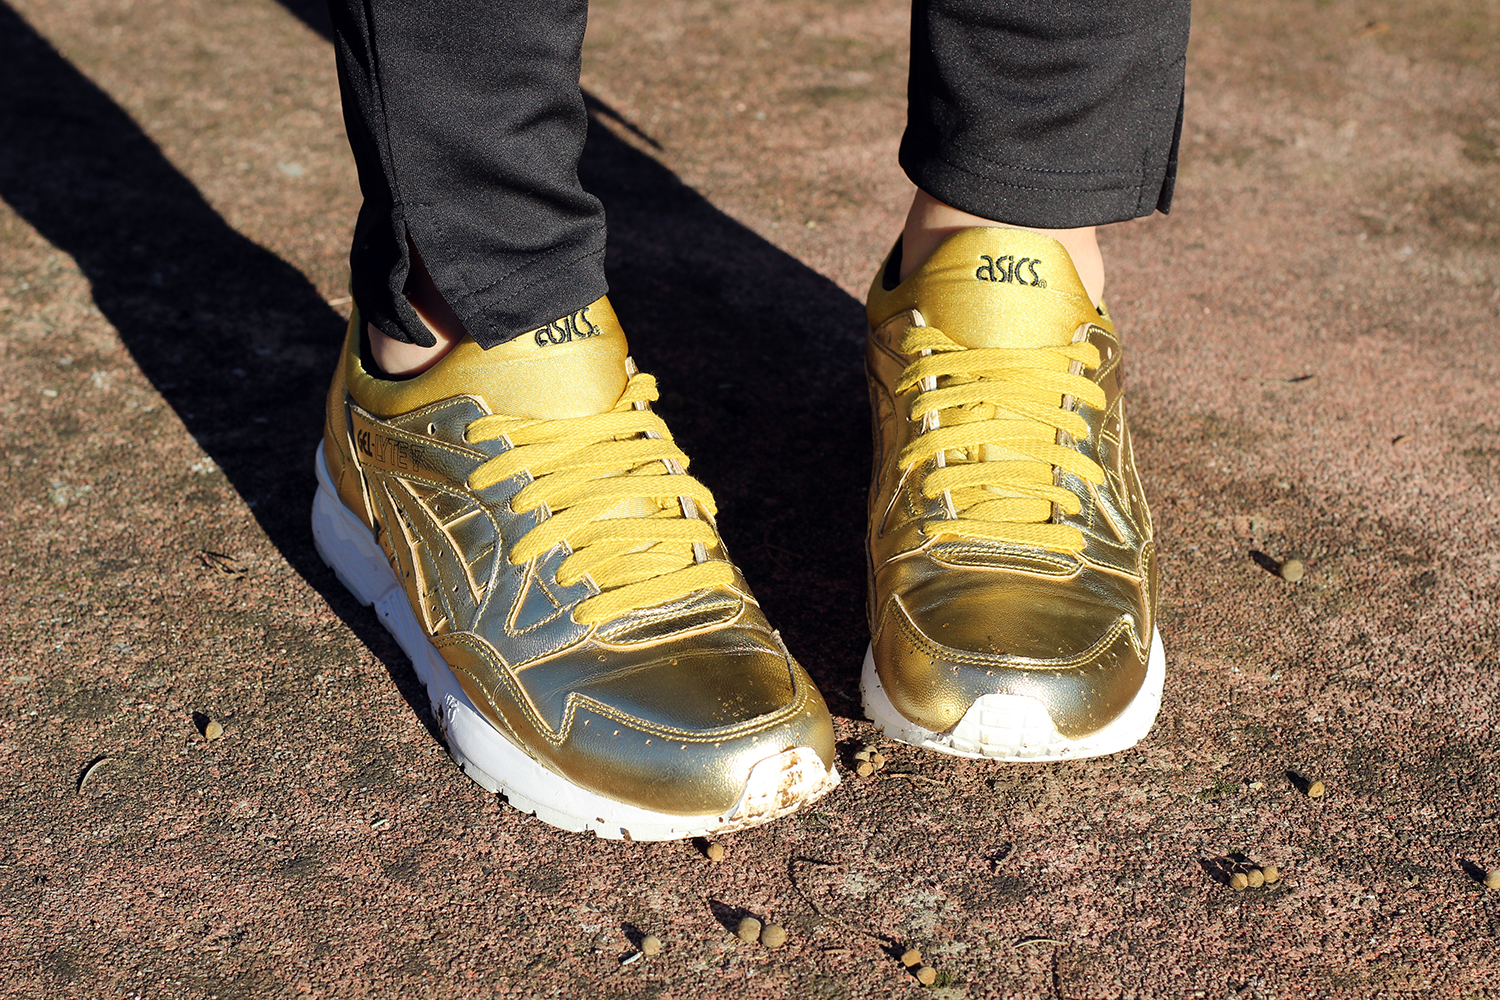 ASICS TIGER GEL LYTE V TOTAL GOLD - SCARPE ORO -